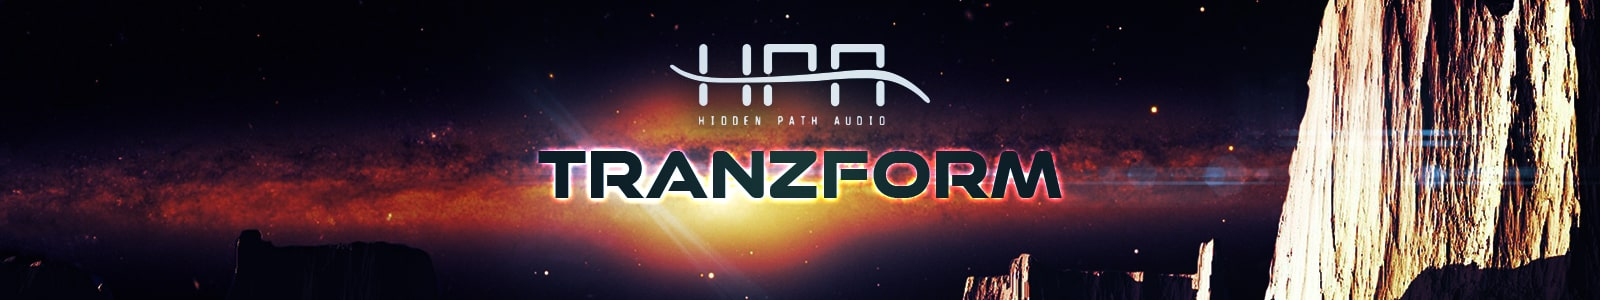 tranzform by hidden path audio